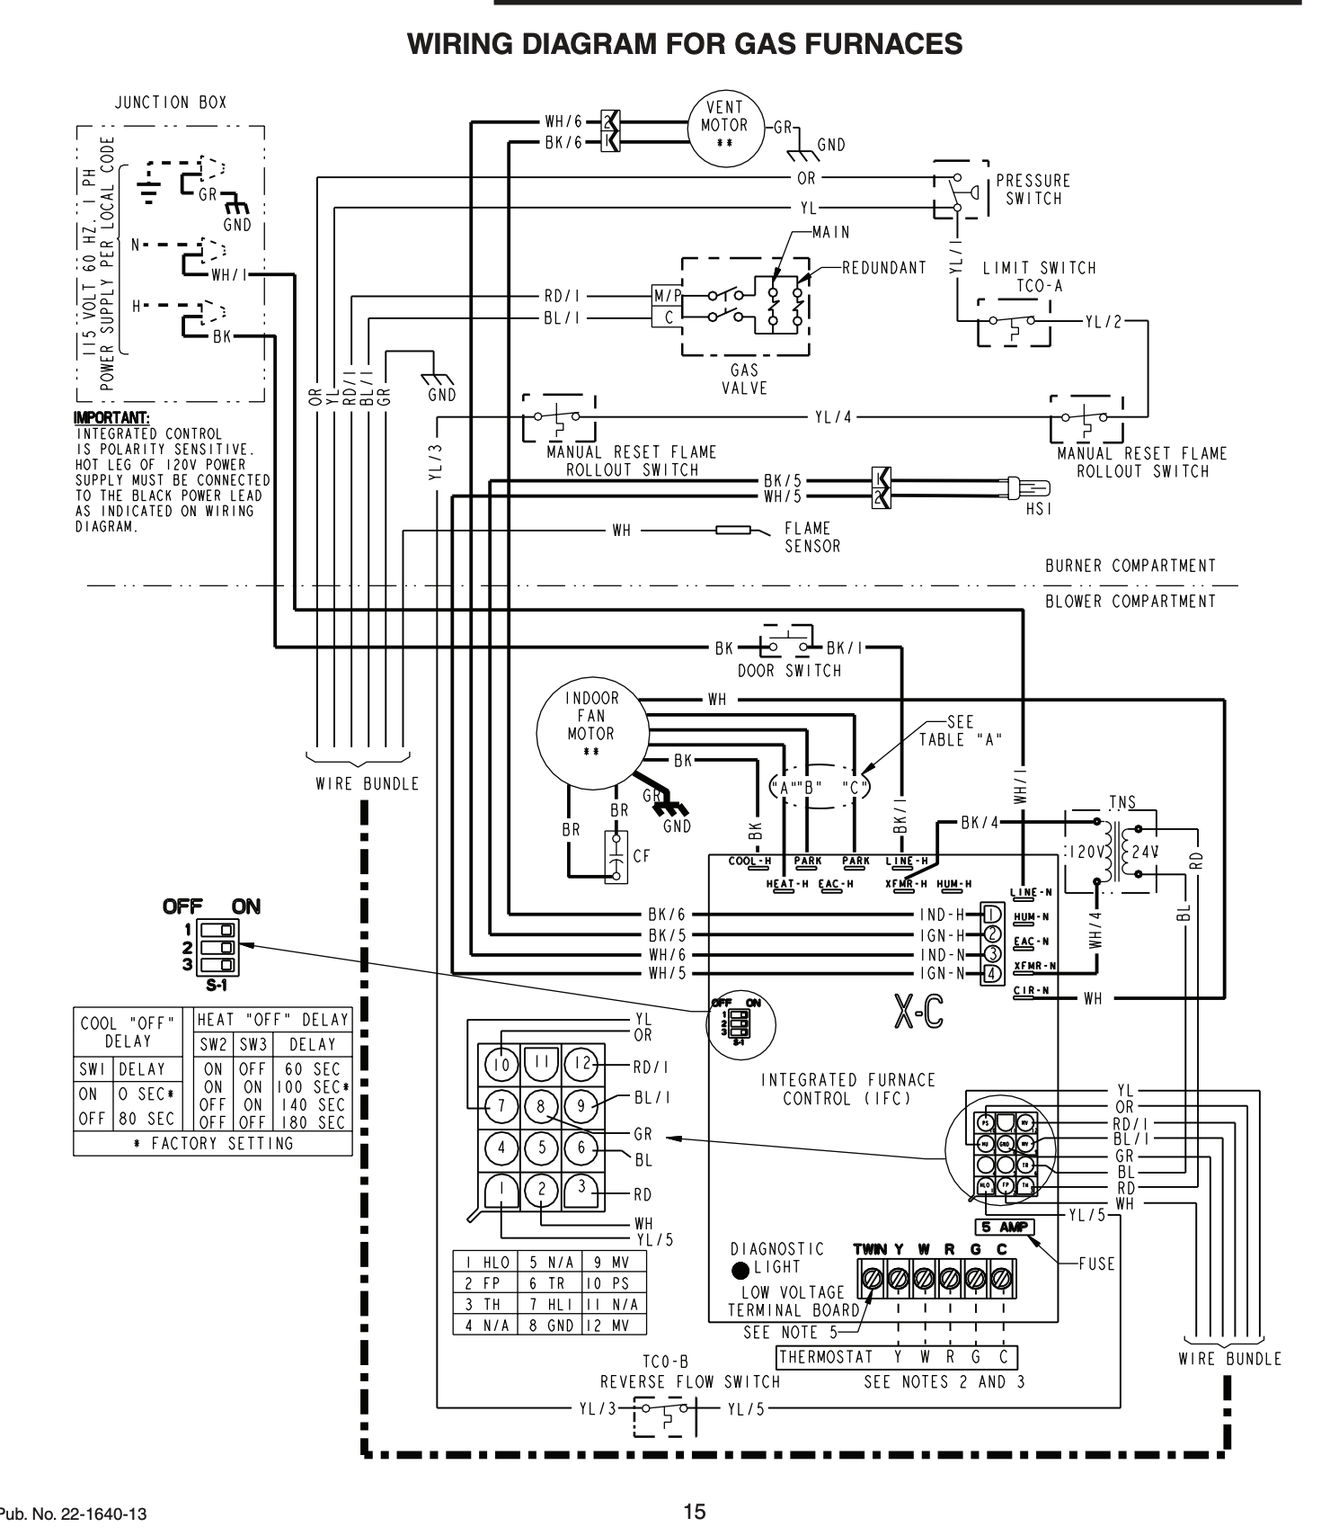 trane xr80 diagram wiring diagram site rh 18 16 lm baudienstleistungen de